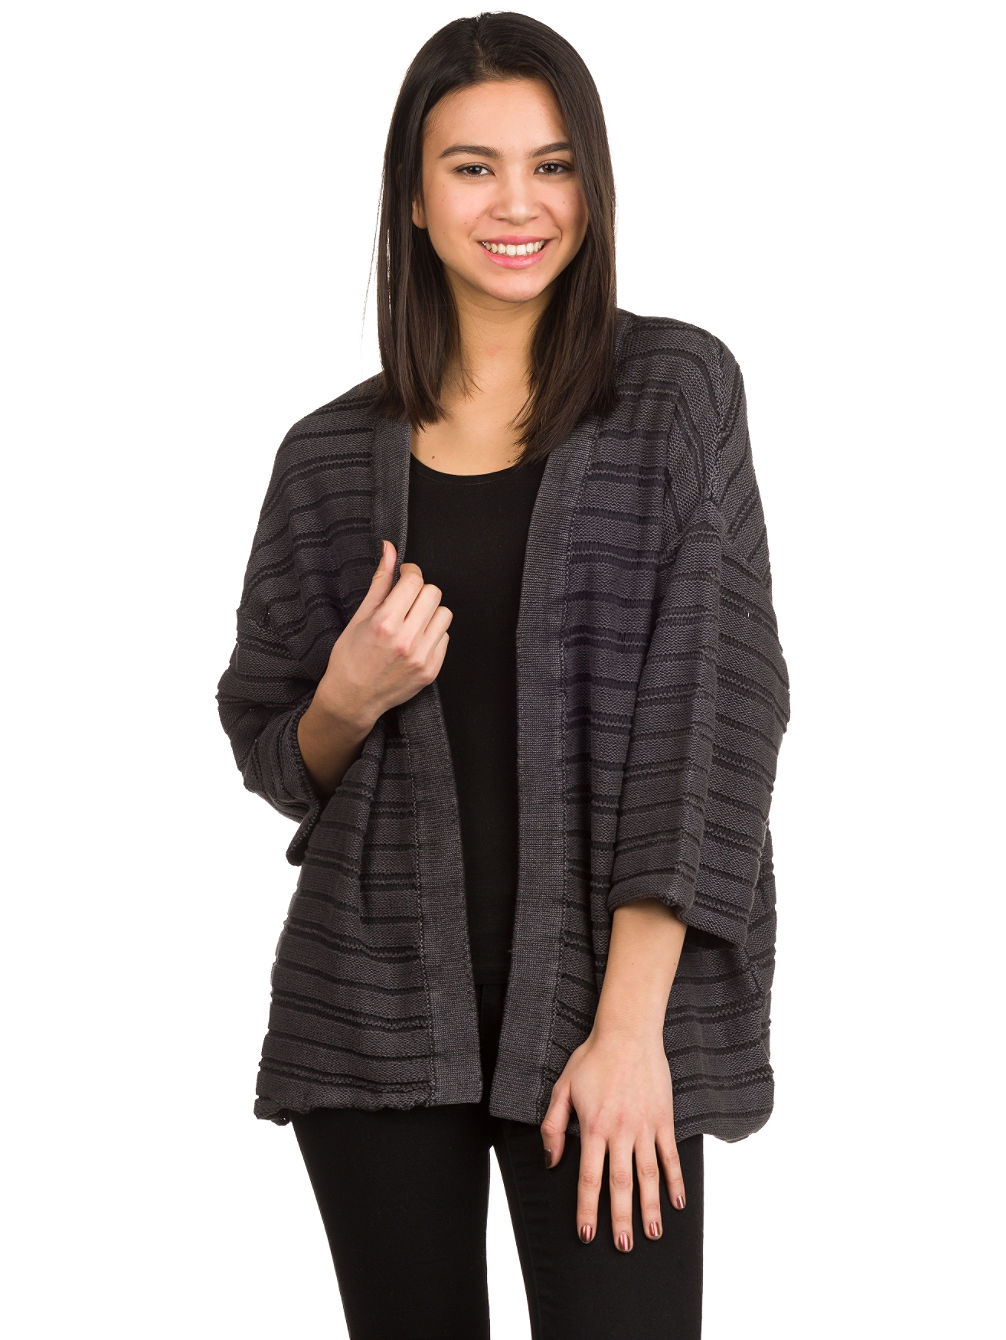 Stated Cardigan